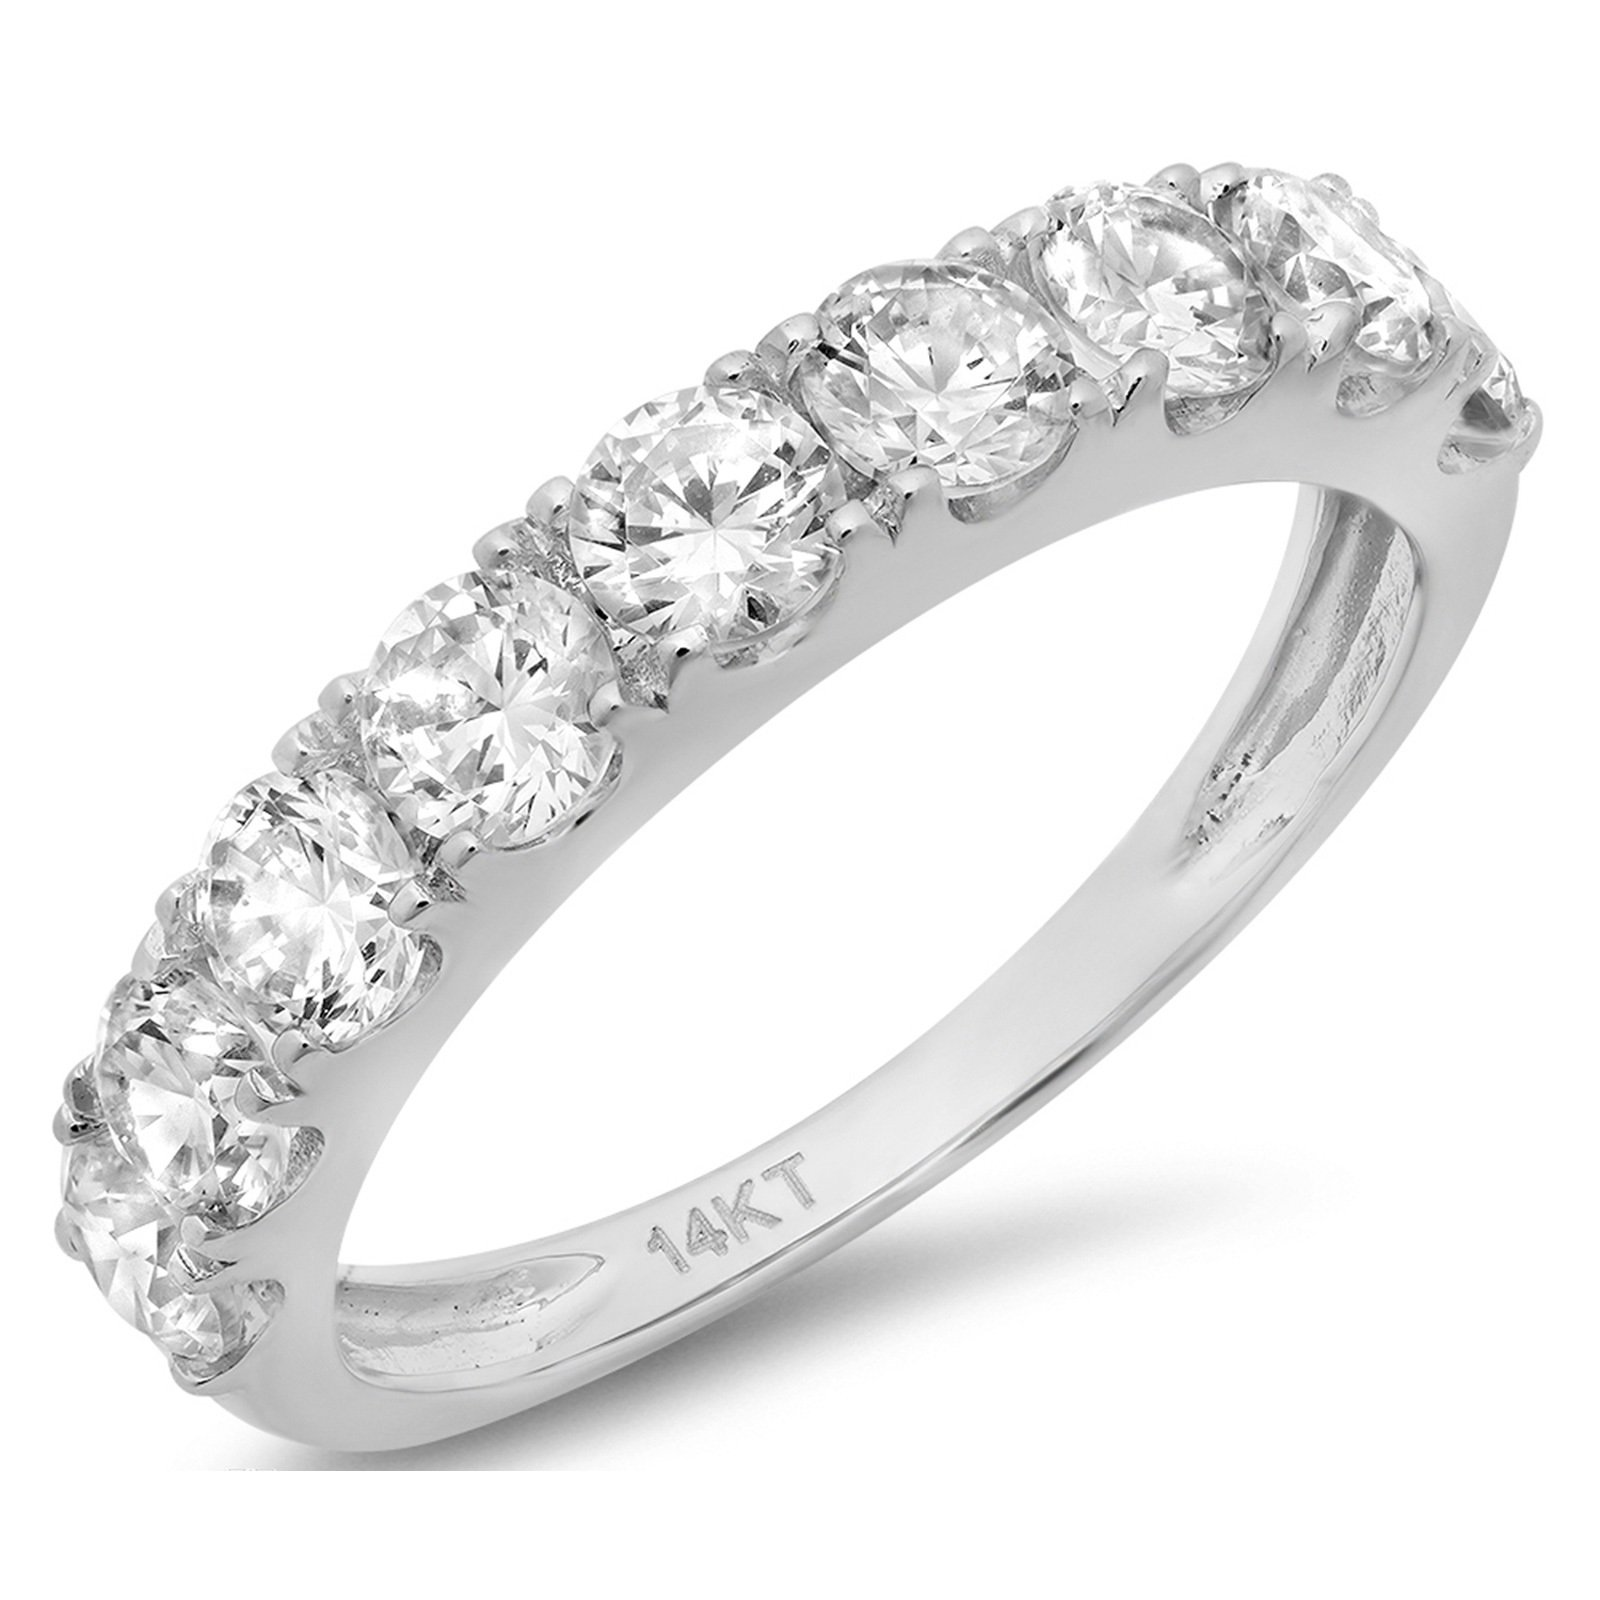 Clara Pucci 1.4 CT Round Cut CZ pave set Bridal Wedding Engagement Band Ring 14kt White Gold, Size 8.5